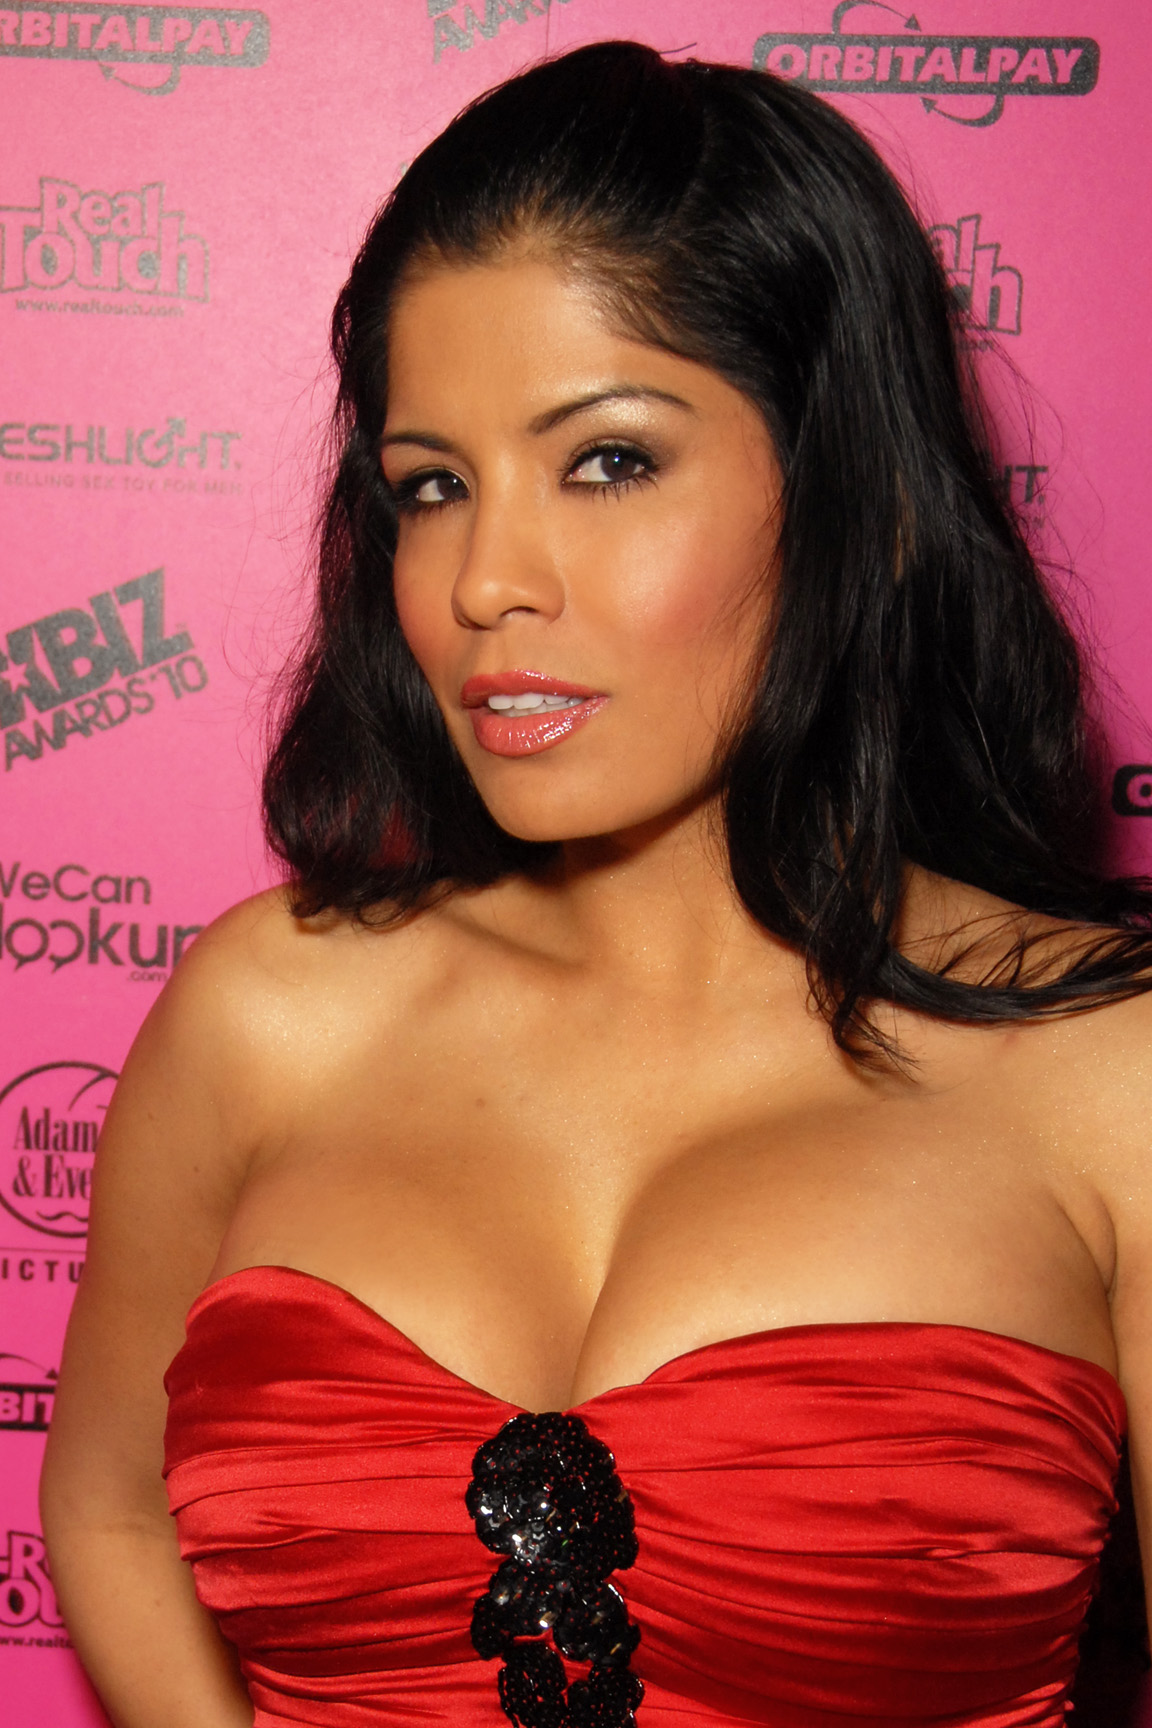 Filealexis Amore 2010 Jpg